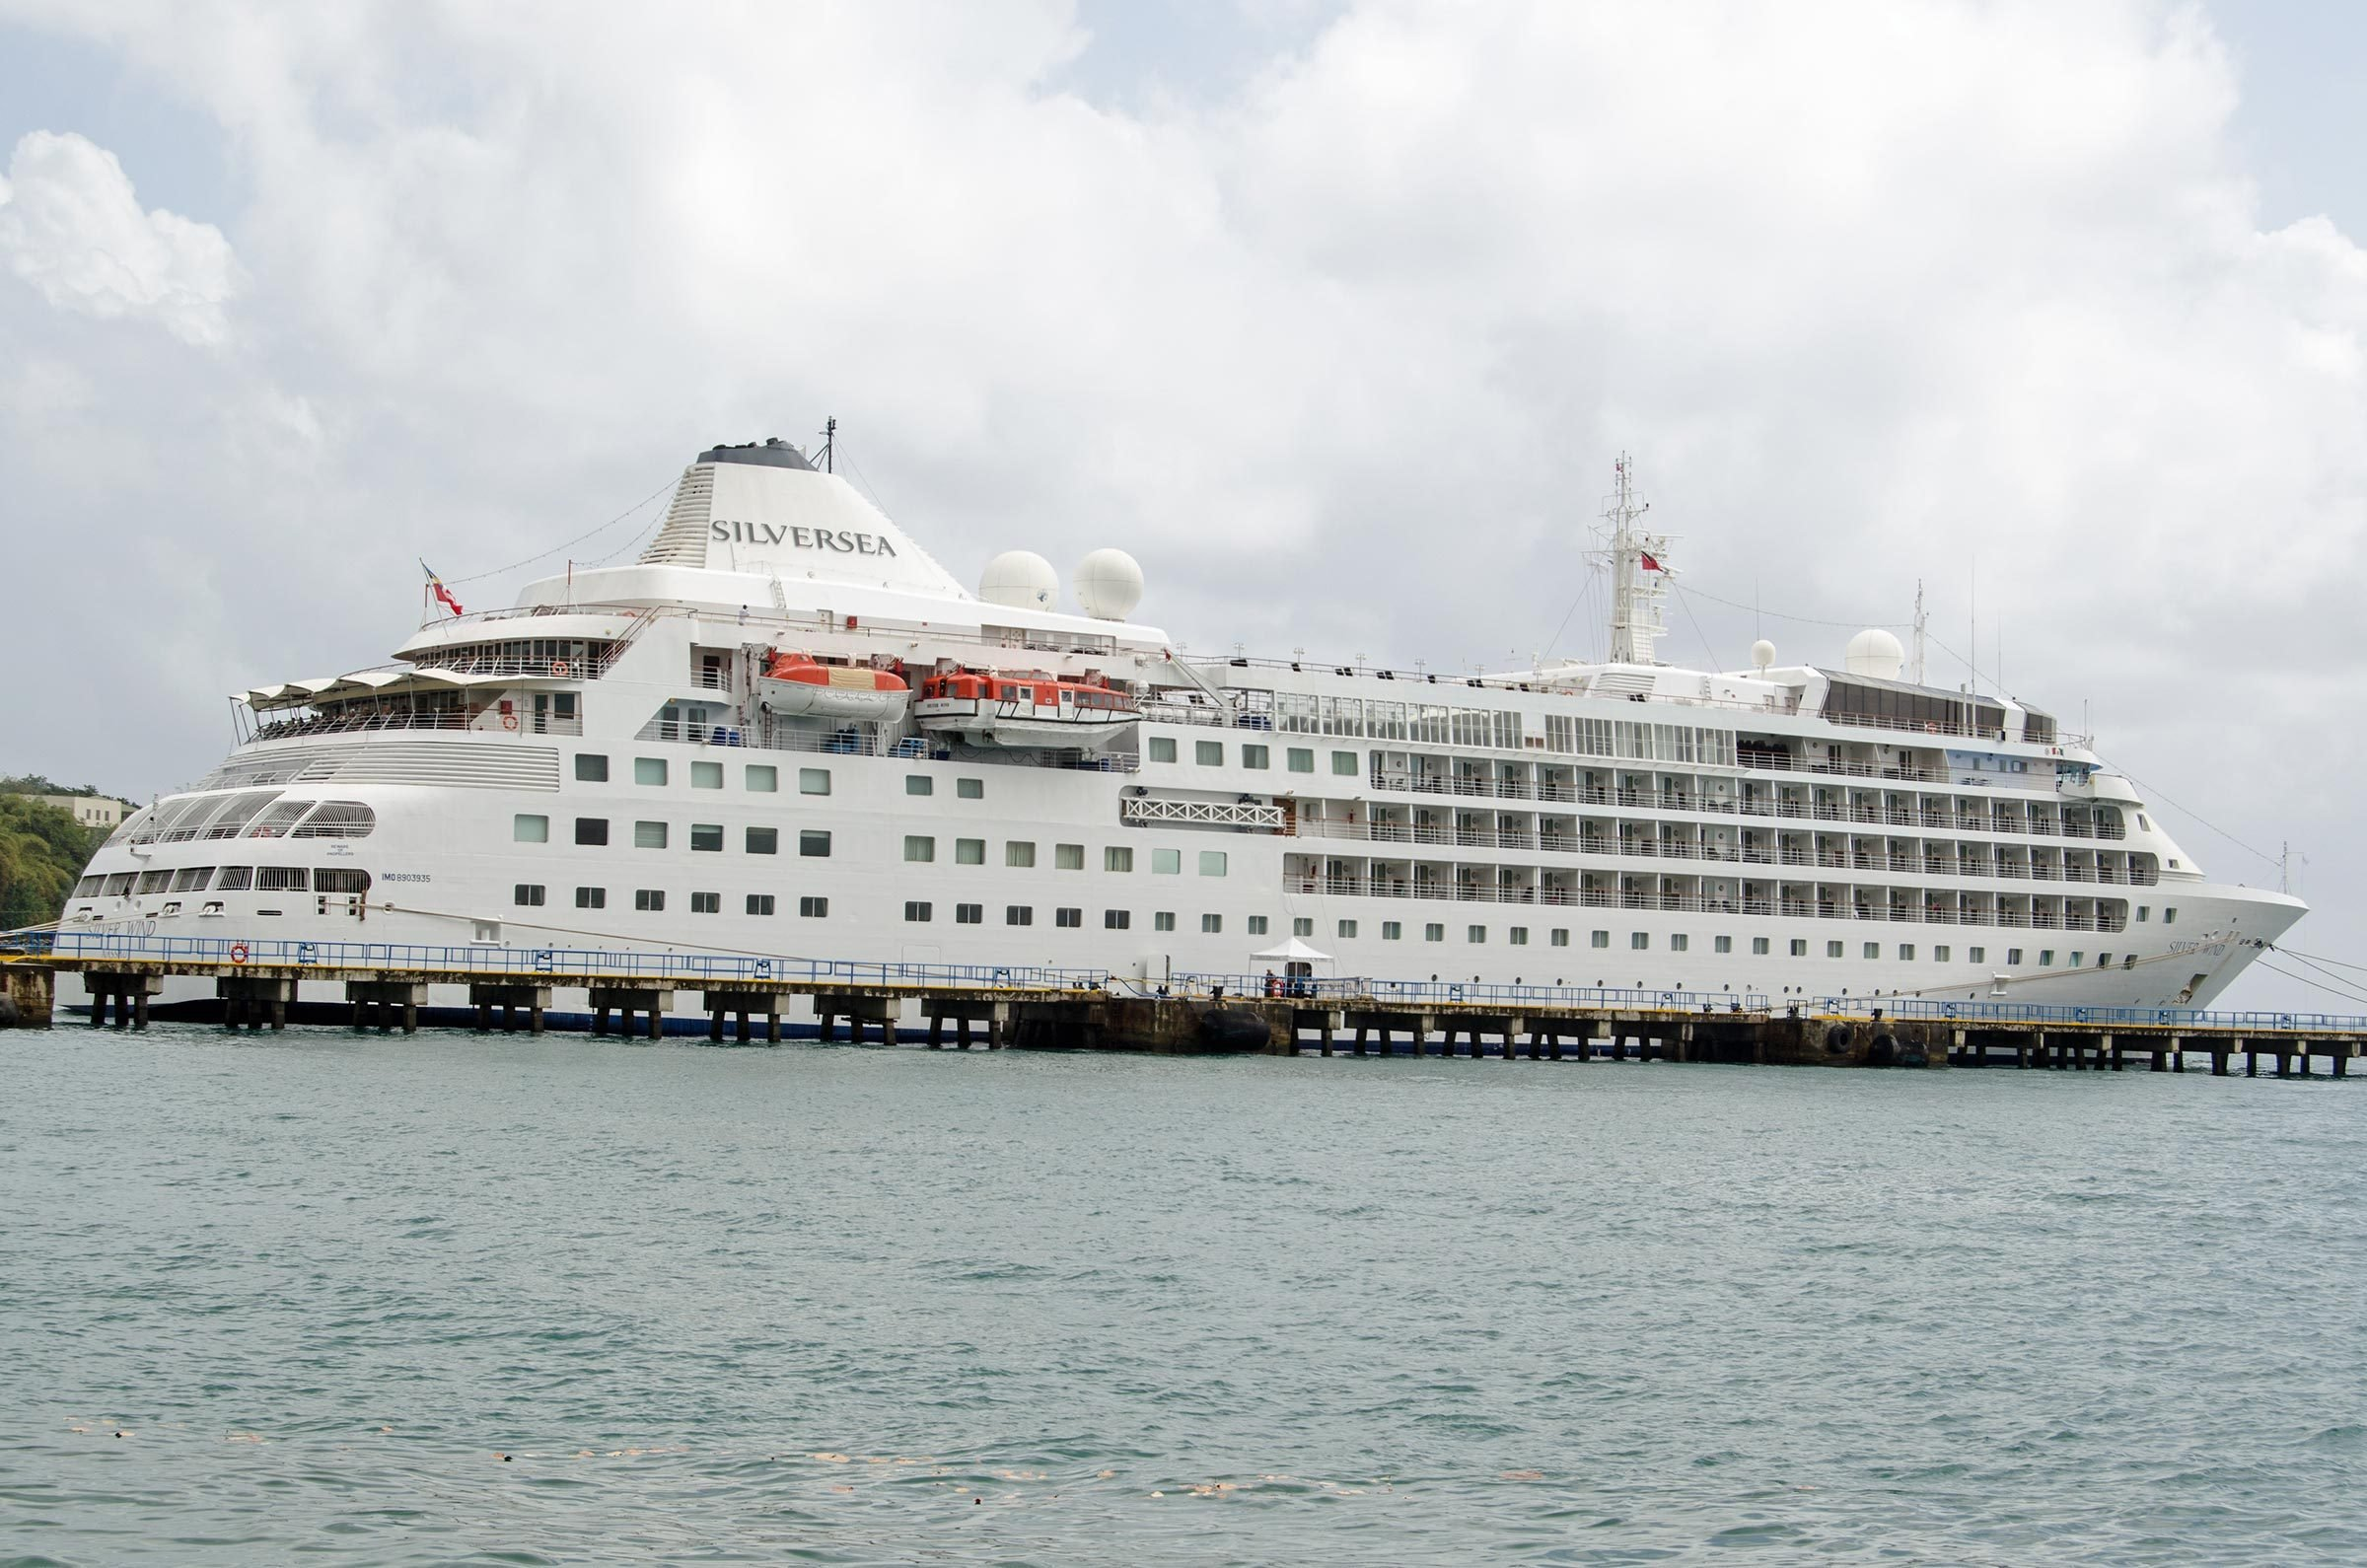 SCARBOROUGH, TRINIDAD AND TOBAGO - JANUARY 11, 2019: The cruise ship Silver Wind docked in the deep water harbour of Scarborough on the island of Tobago. Part of the Silversea line of ships.